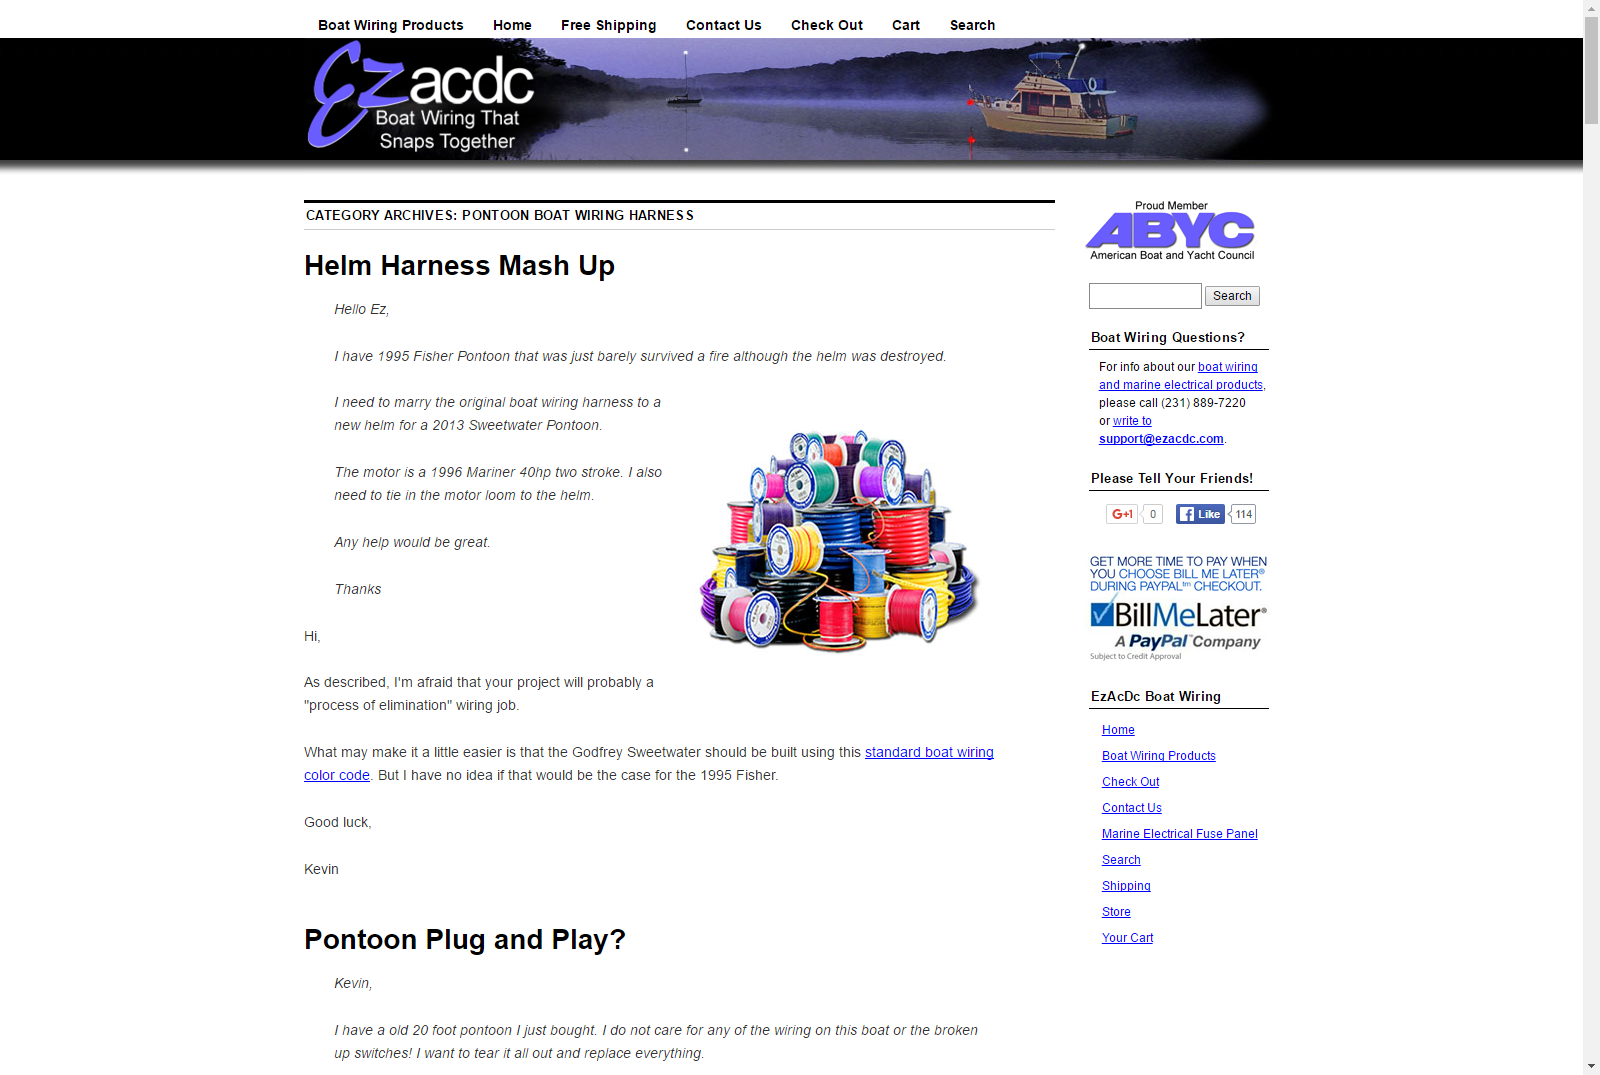 Pontoon Boat Wiring Harness Easy To Install Ezacdc Product Marine Electrical